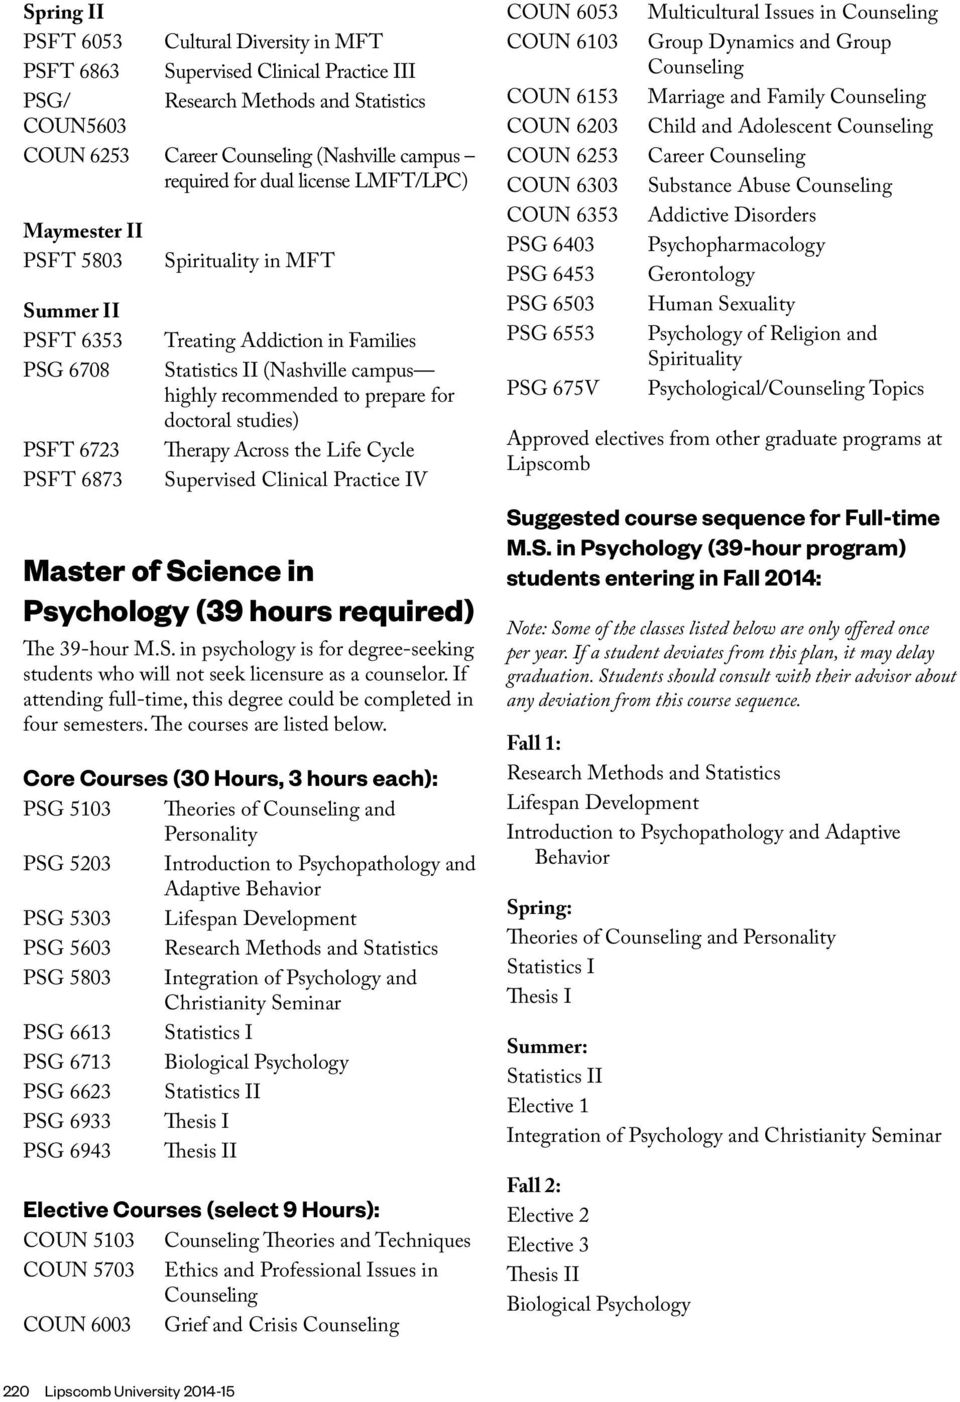 doctoral studies) Therapy Across the Life Cycle Supervised Clinical Practice IV Master of Science in Psychology (39 hours required) The 39-hour M.S. in psychology is for degree-seeking students who will not seek licensure as a counselor.